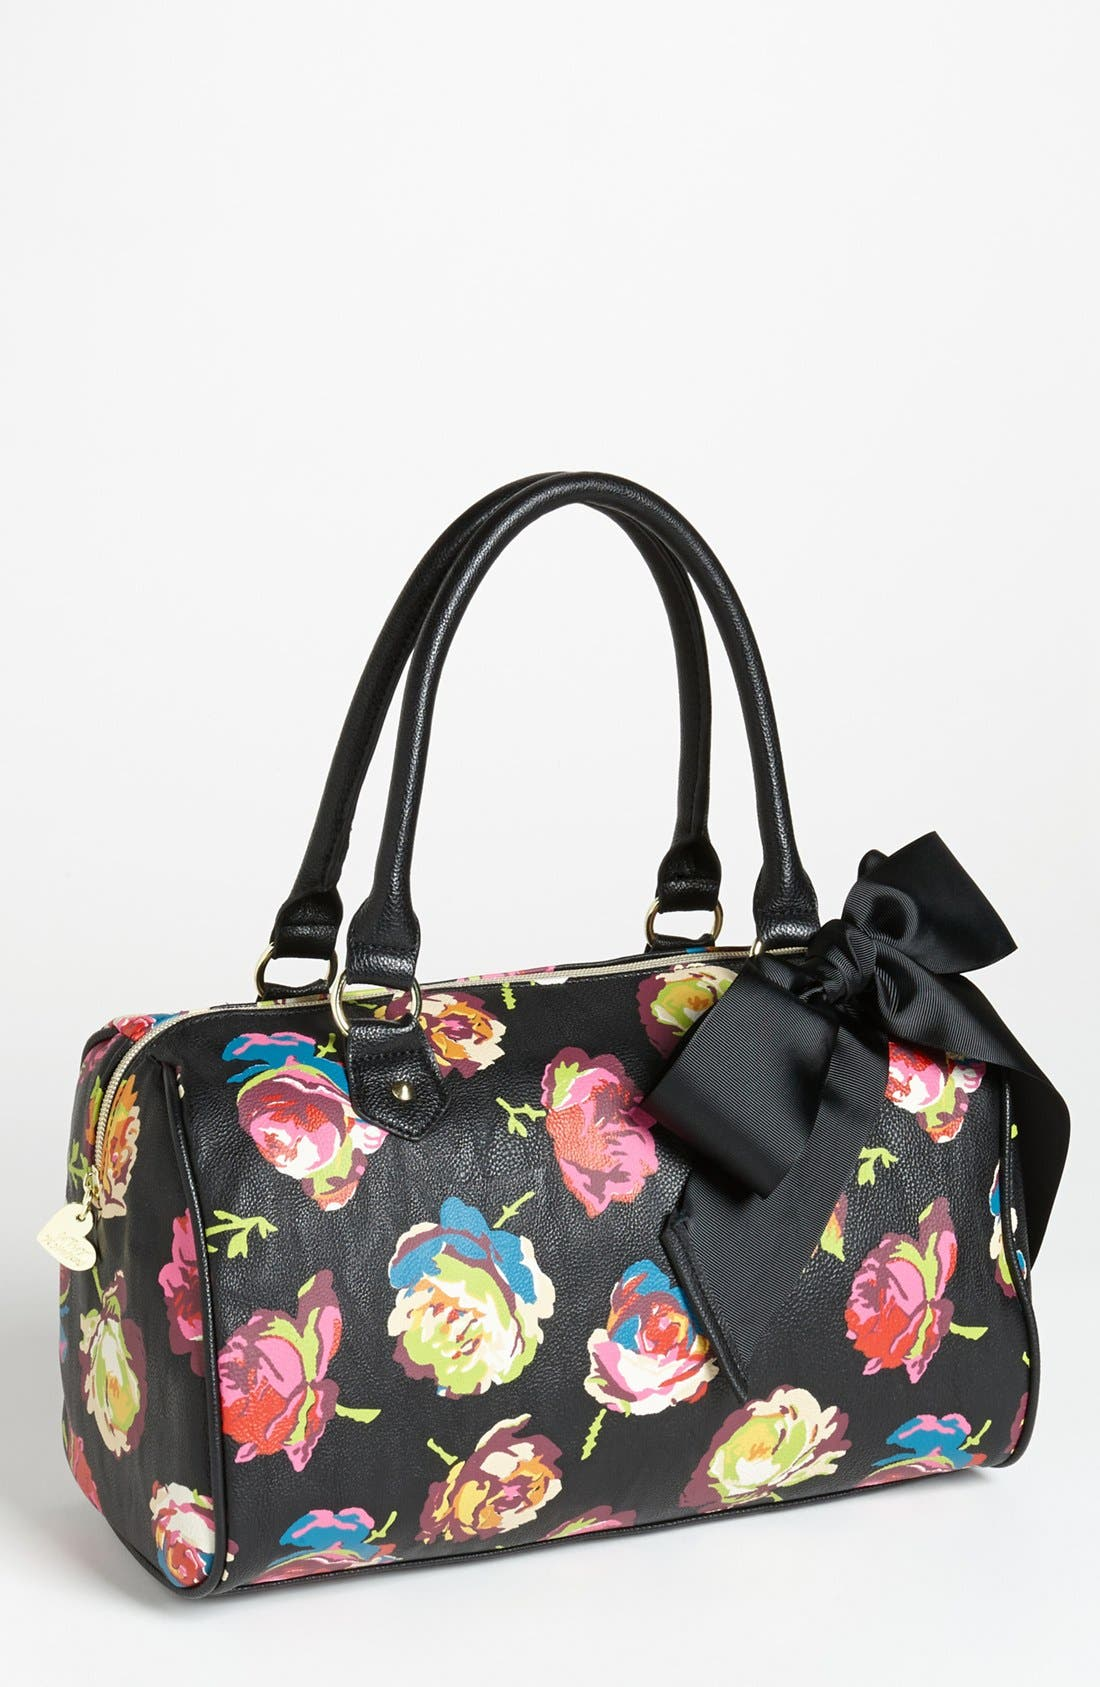 Alternate Image 1 Selected - Betsey Johnson Faux Leather Floral Satchel